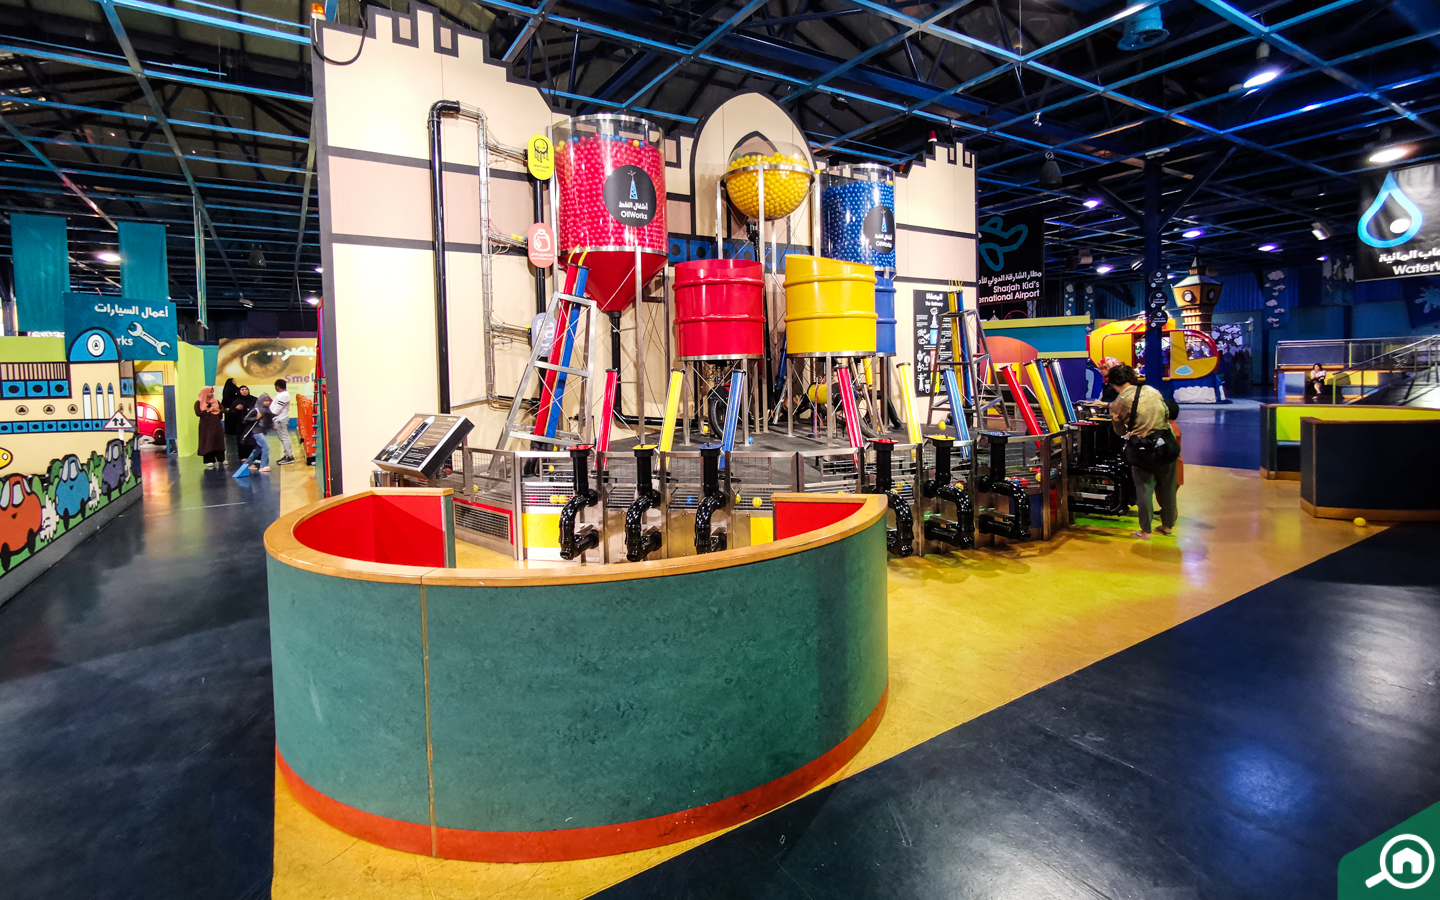 Petroleum Refinery at Sharjah Discovery Centre